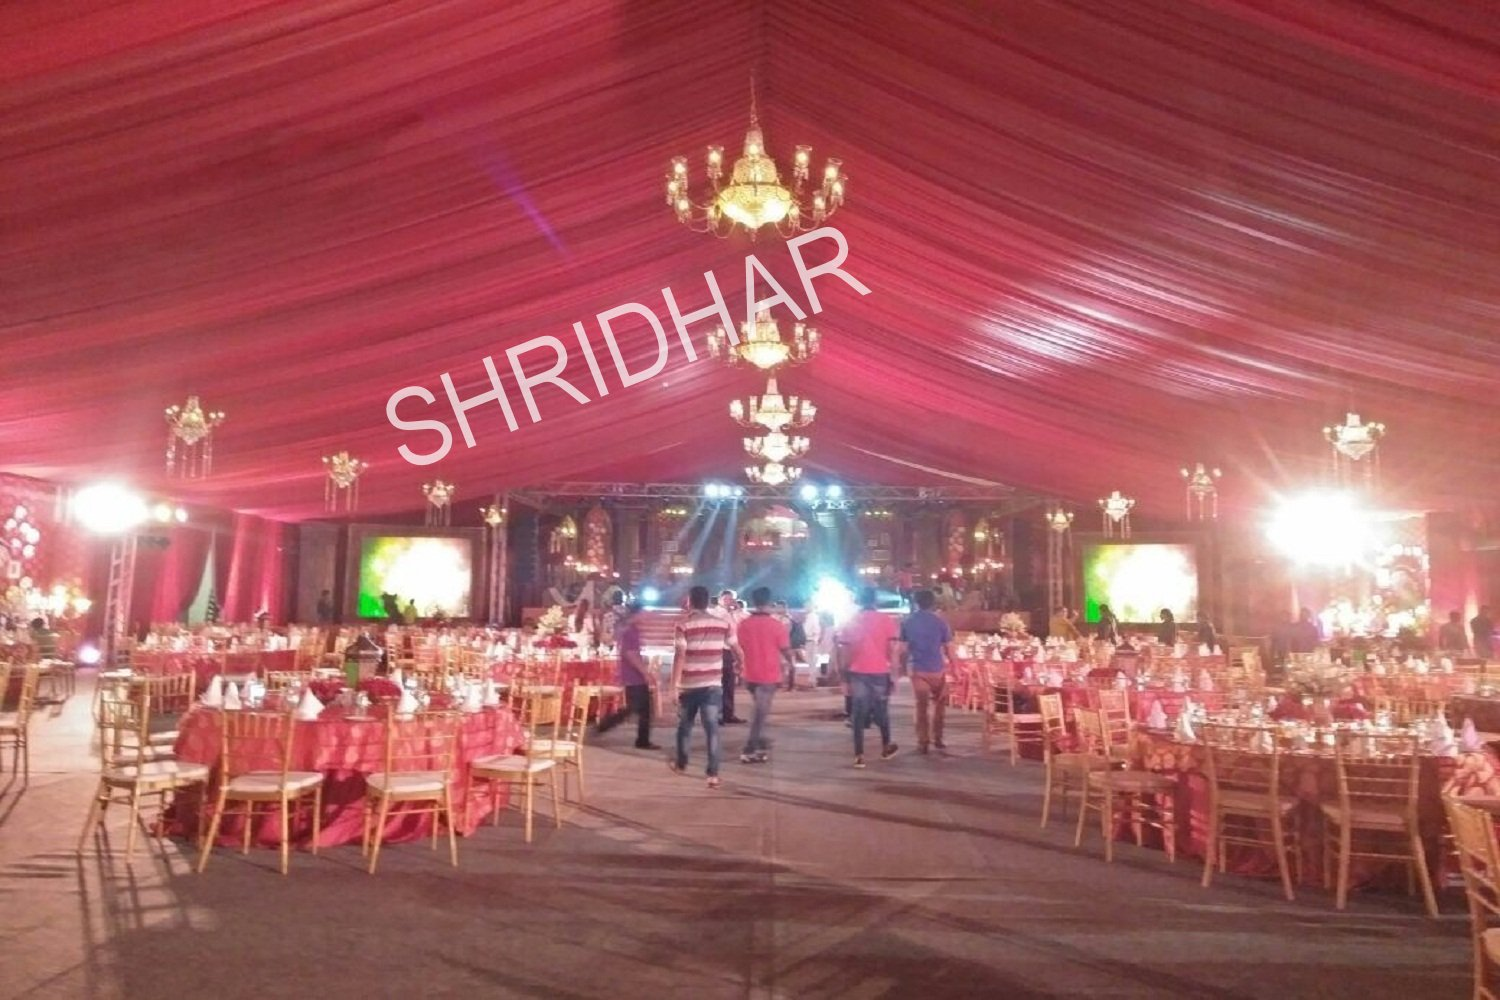 tables chairs tents canopies shamianas lights lighting for rent for weddings in bangalore shridhar tent house